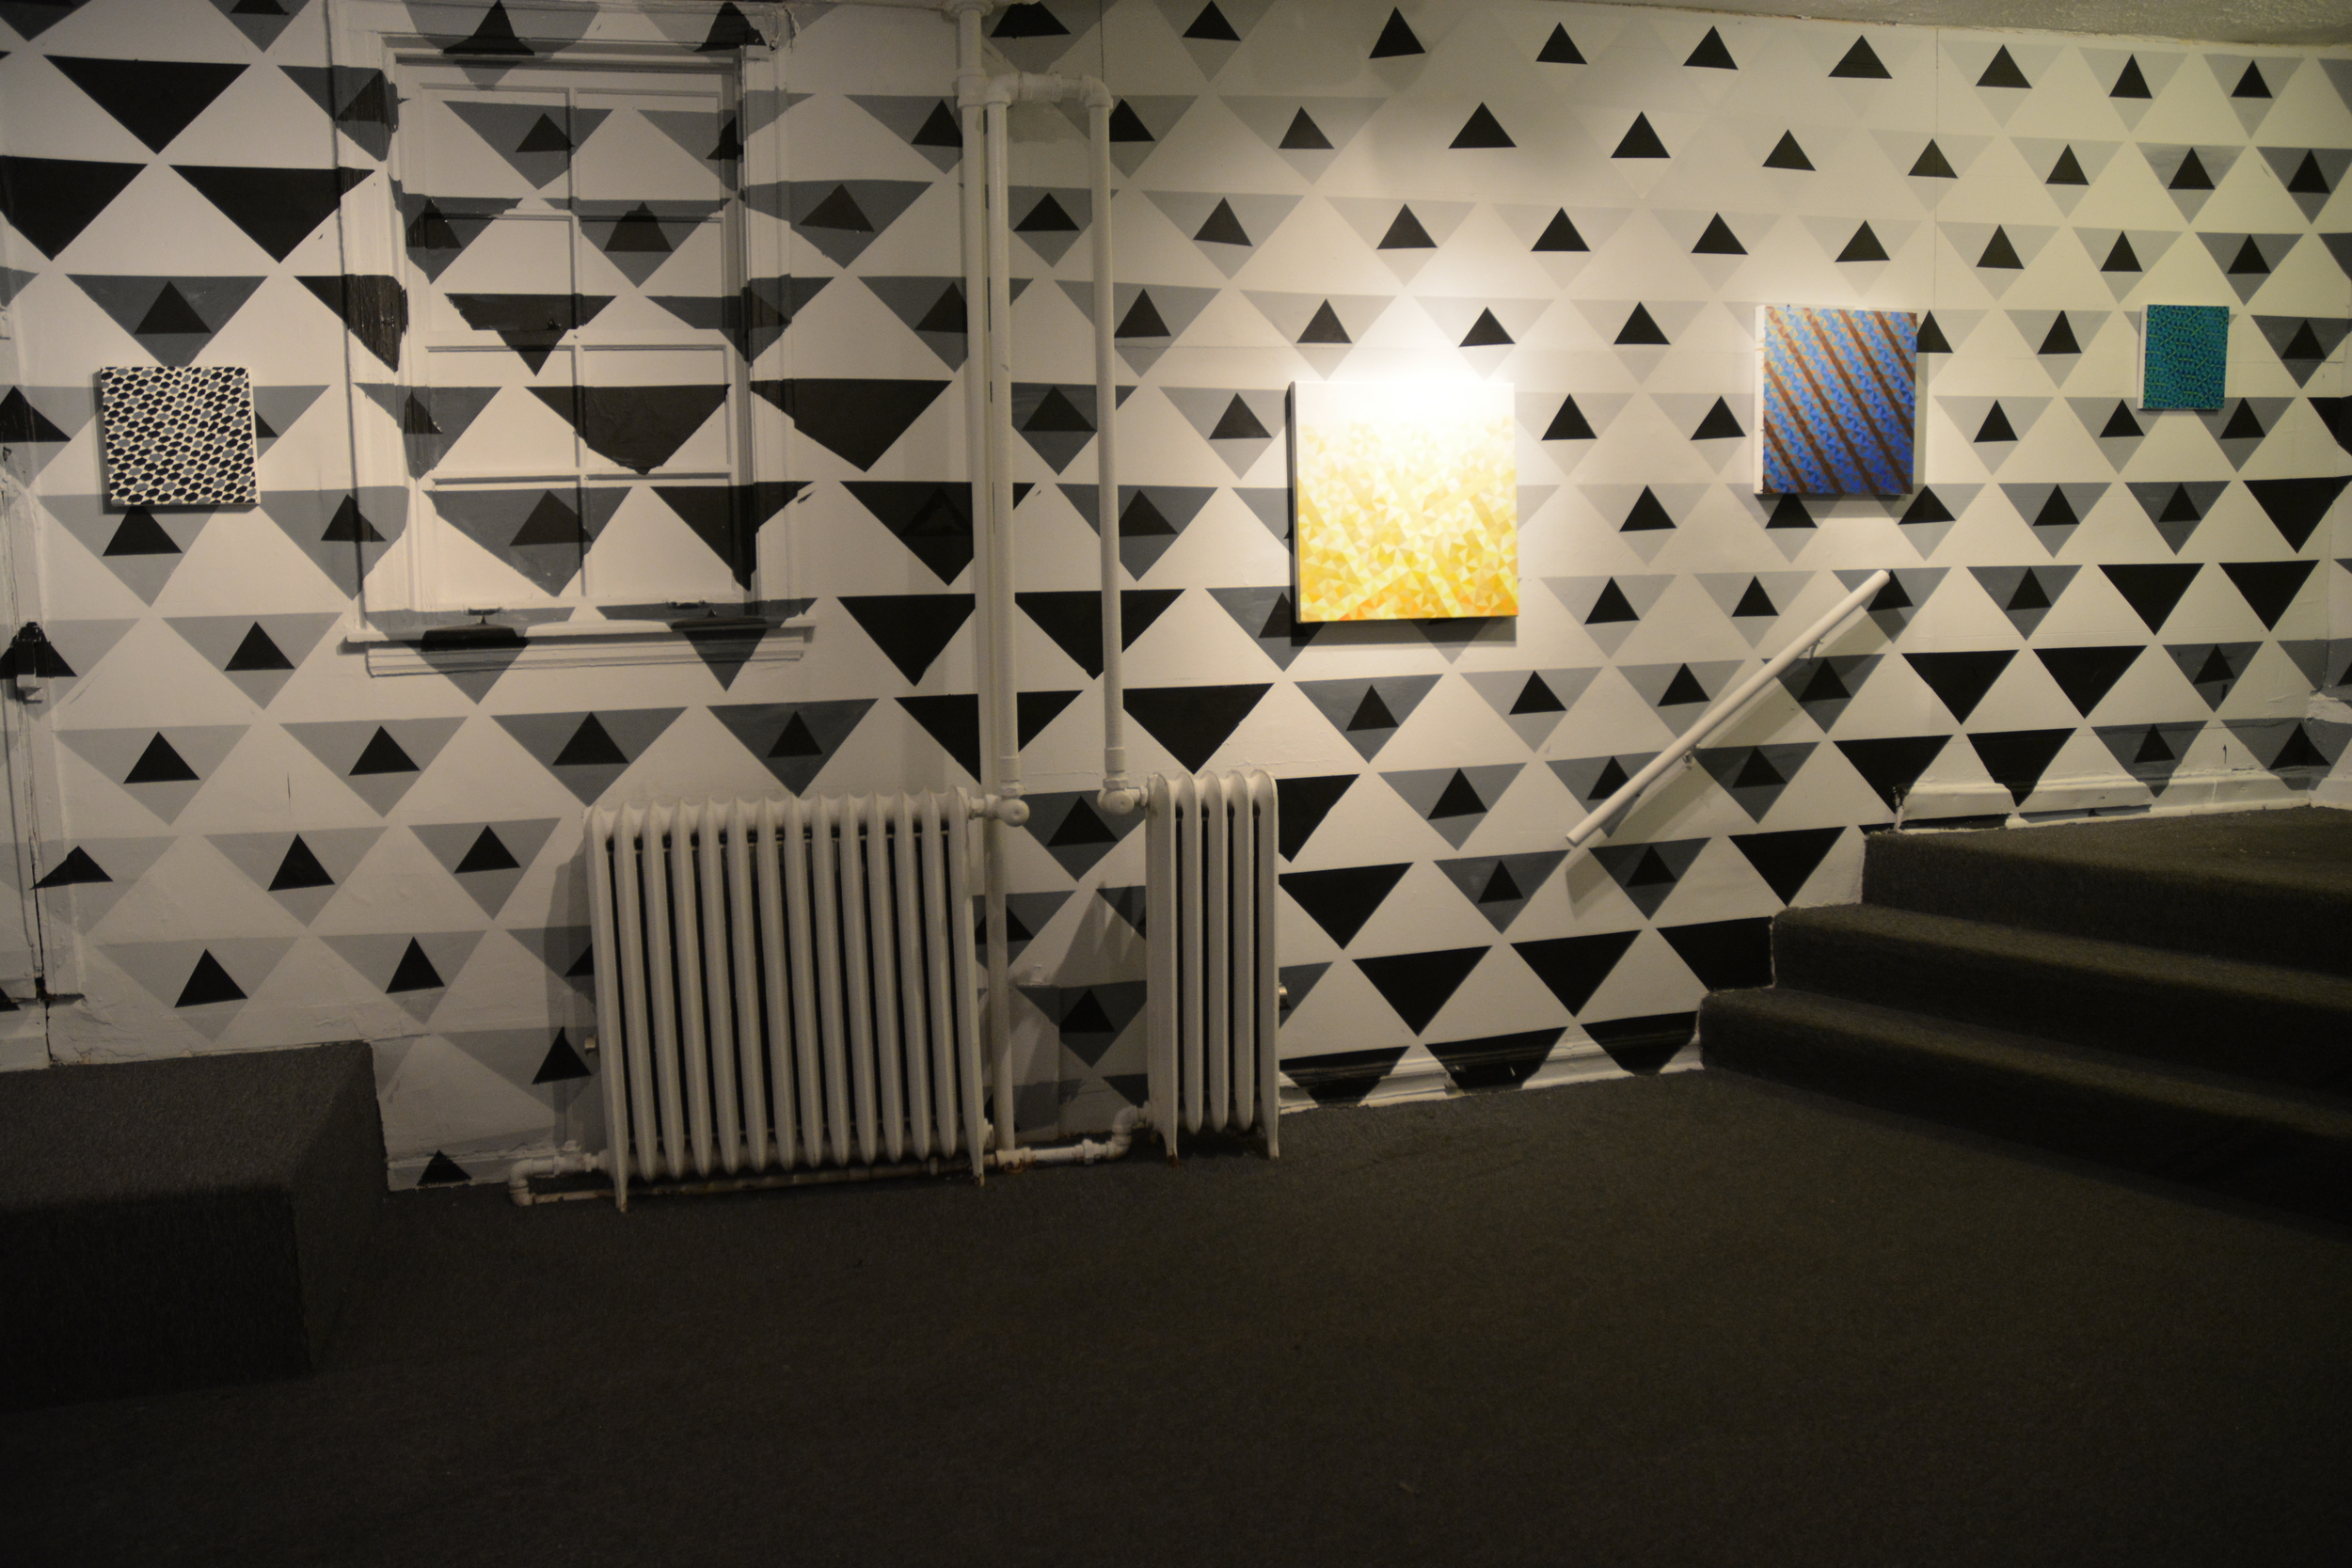 Installation View #55, #70, #69, #57 on site specific wall painting